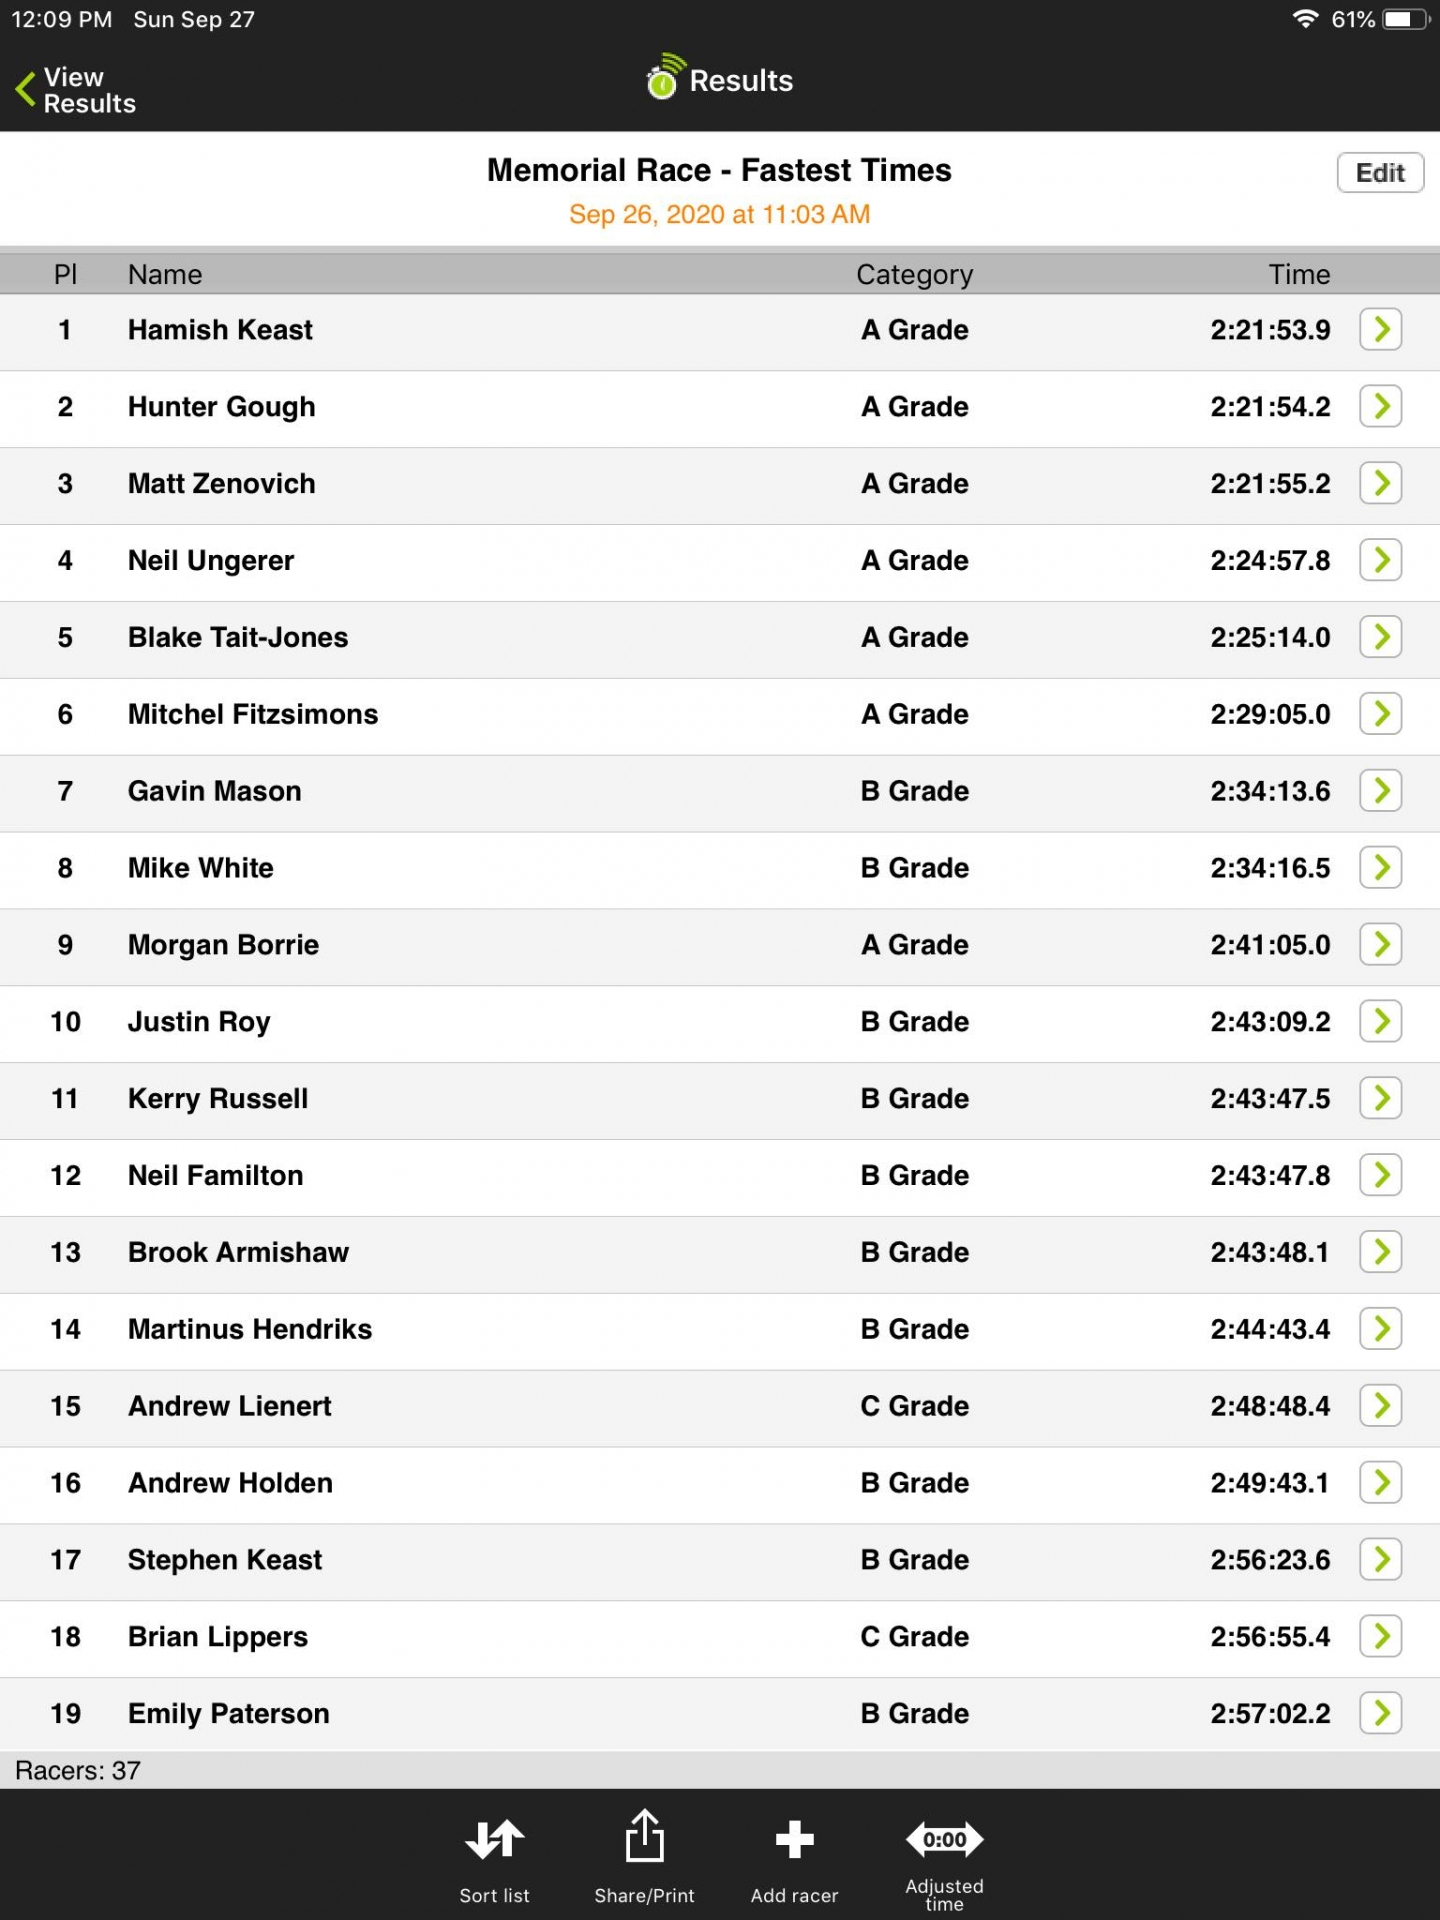 Memorial Race - Fastest Times 1